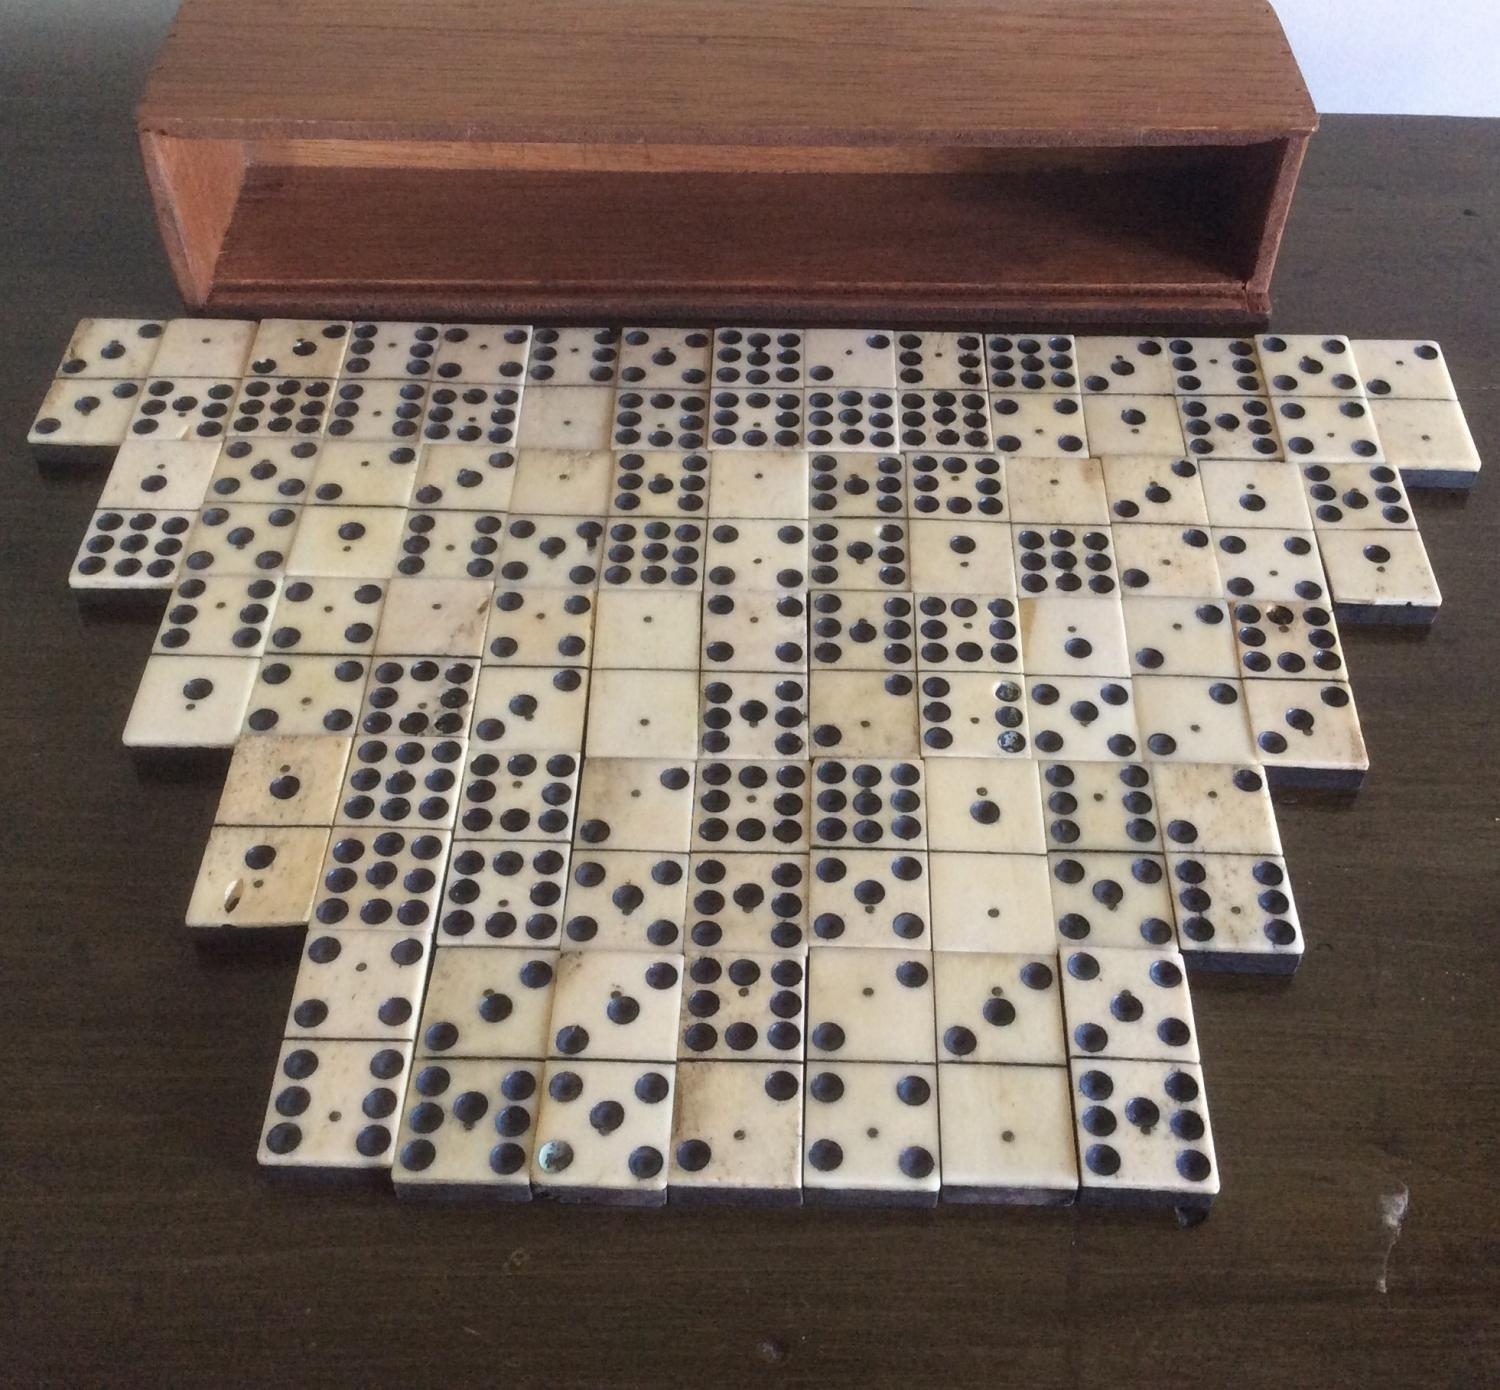 Unusual set of 55 Bone and Ebony Dominoes